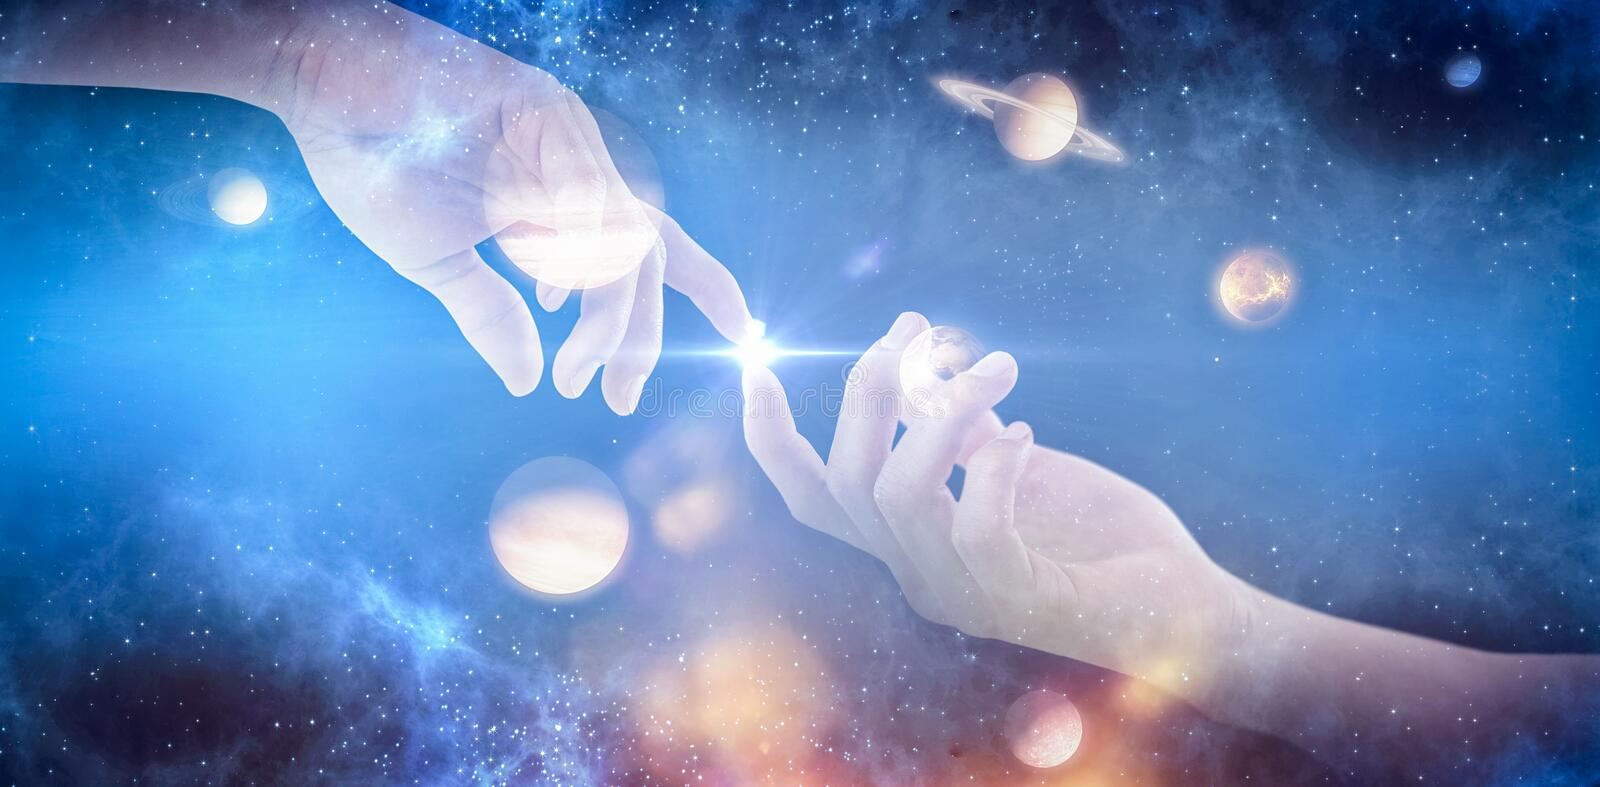 Composite image of hand of man pretending to hold an invisible object 3d royalty free illustration